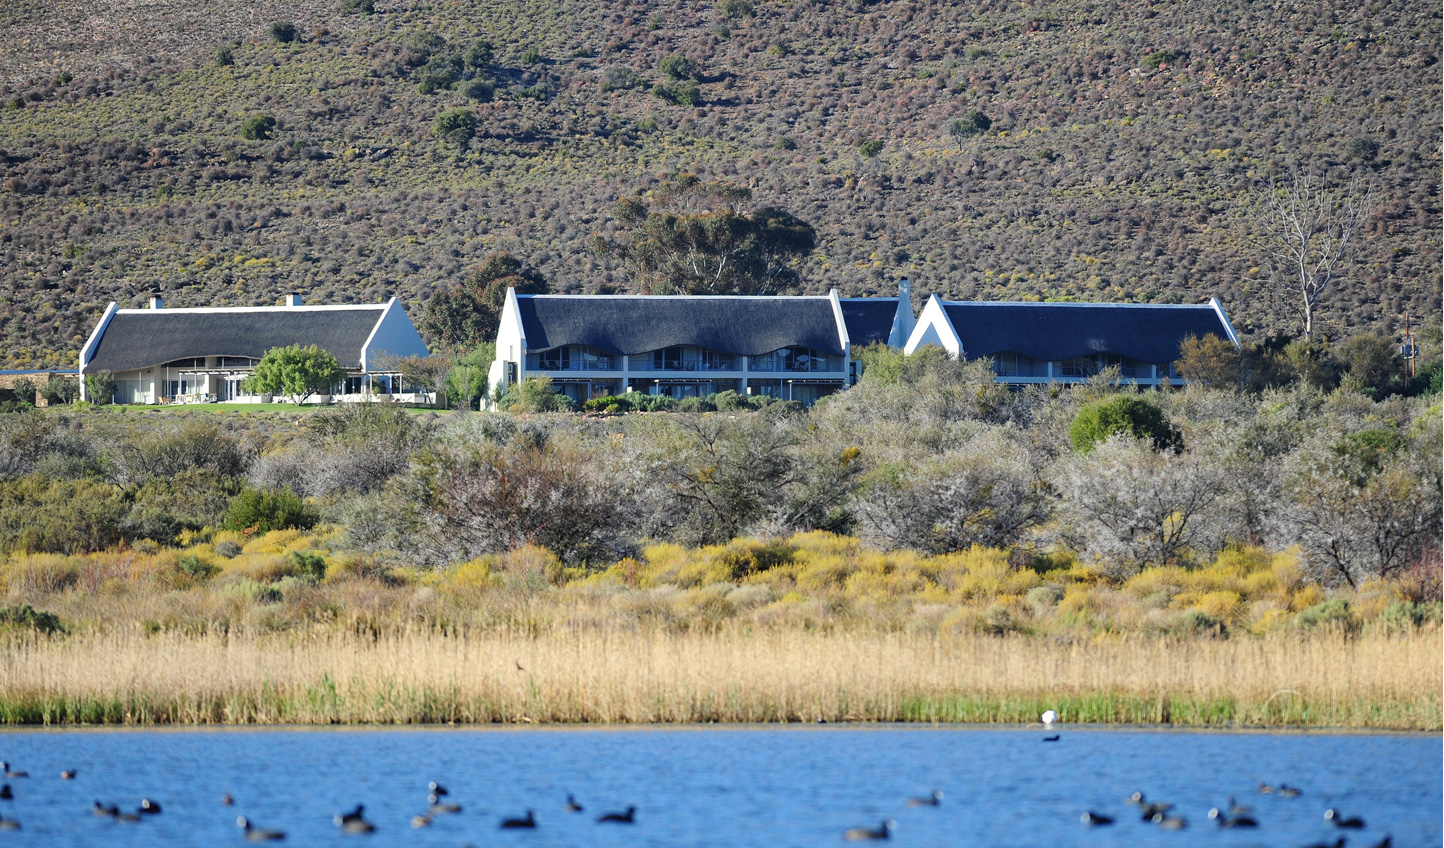 Gondwana Lodge on the edge of the water